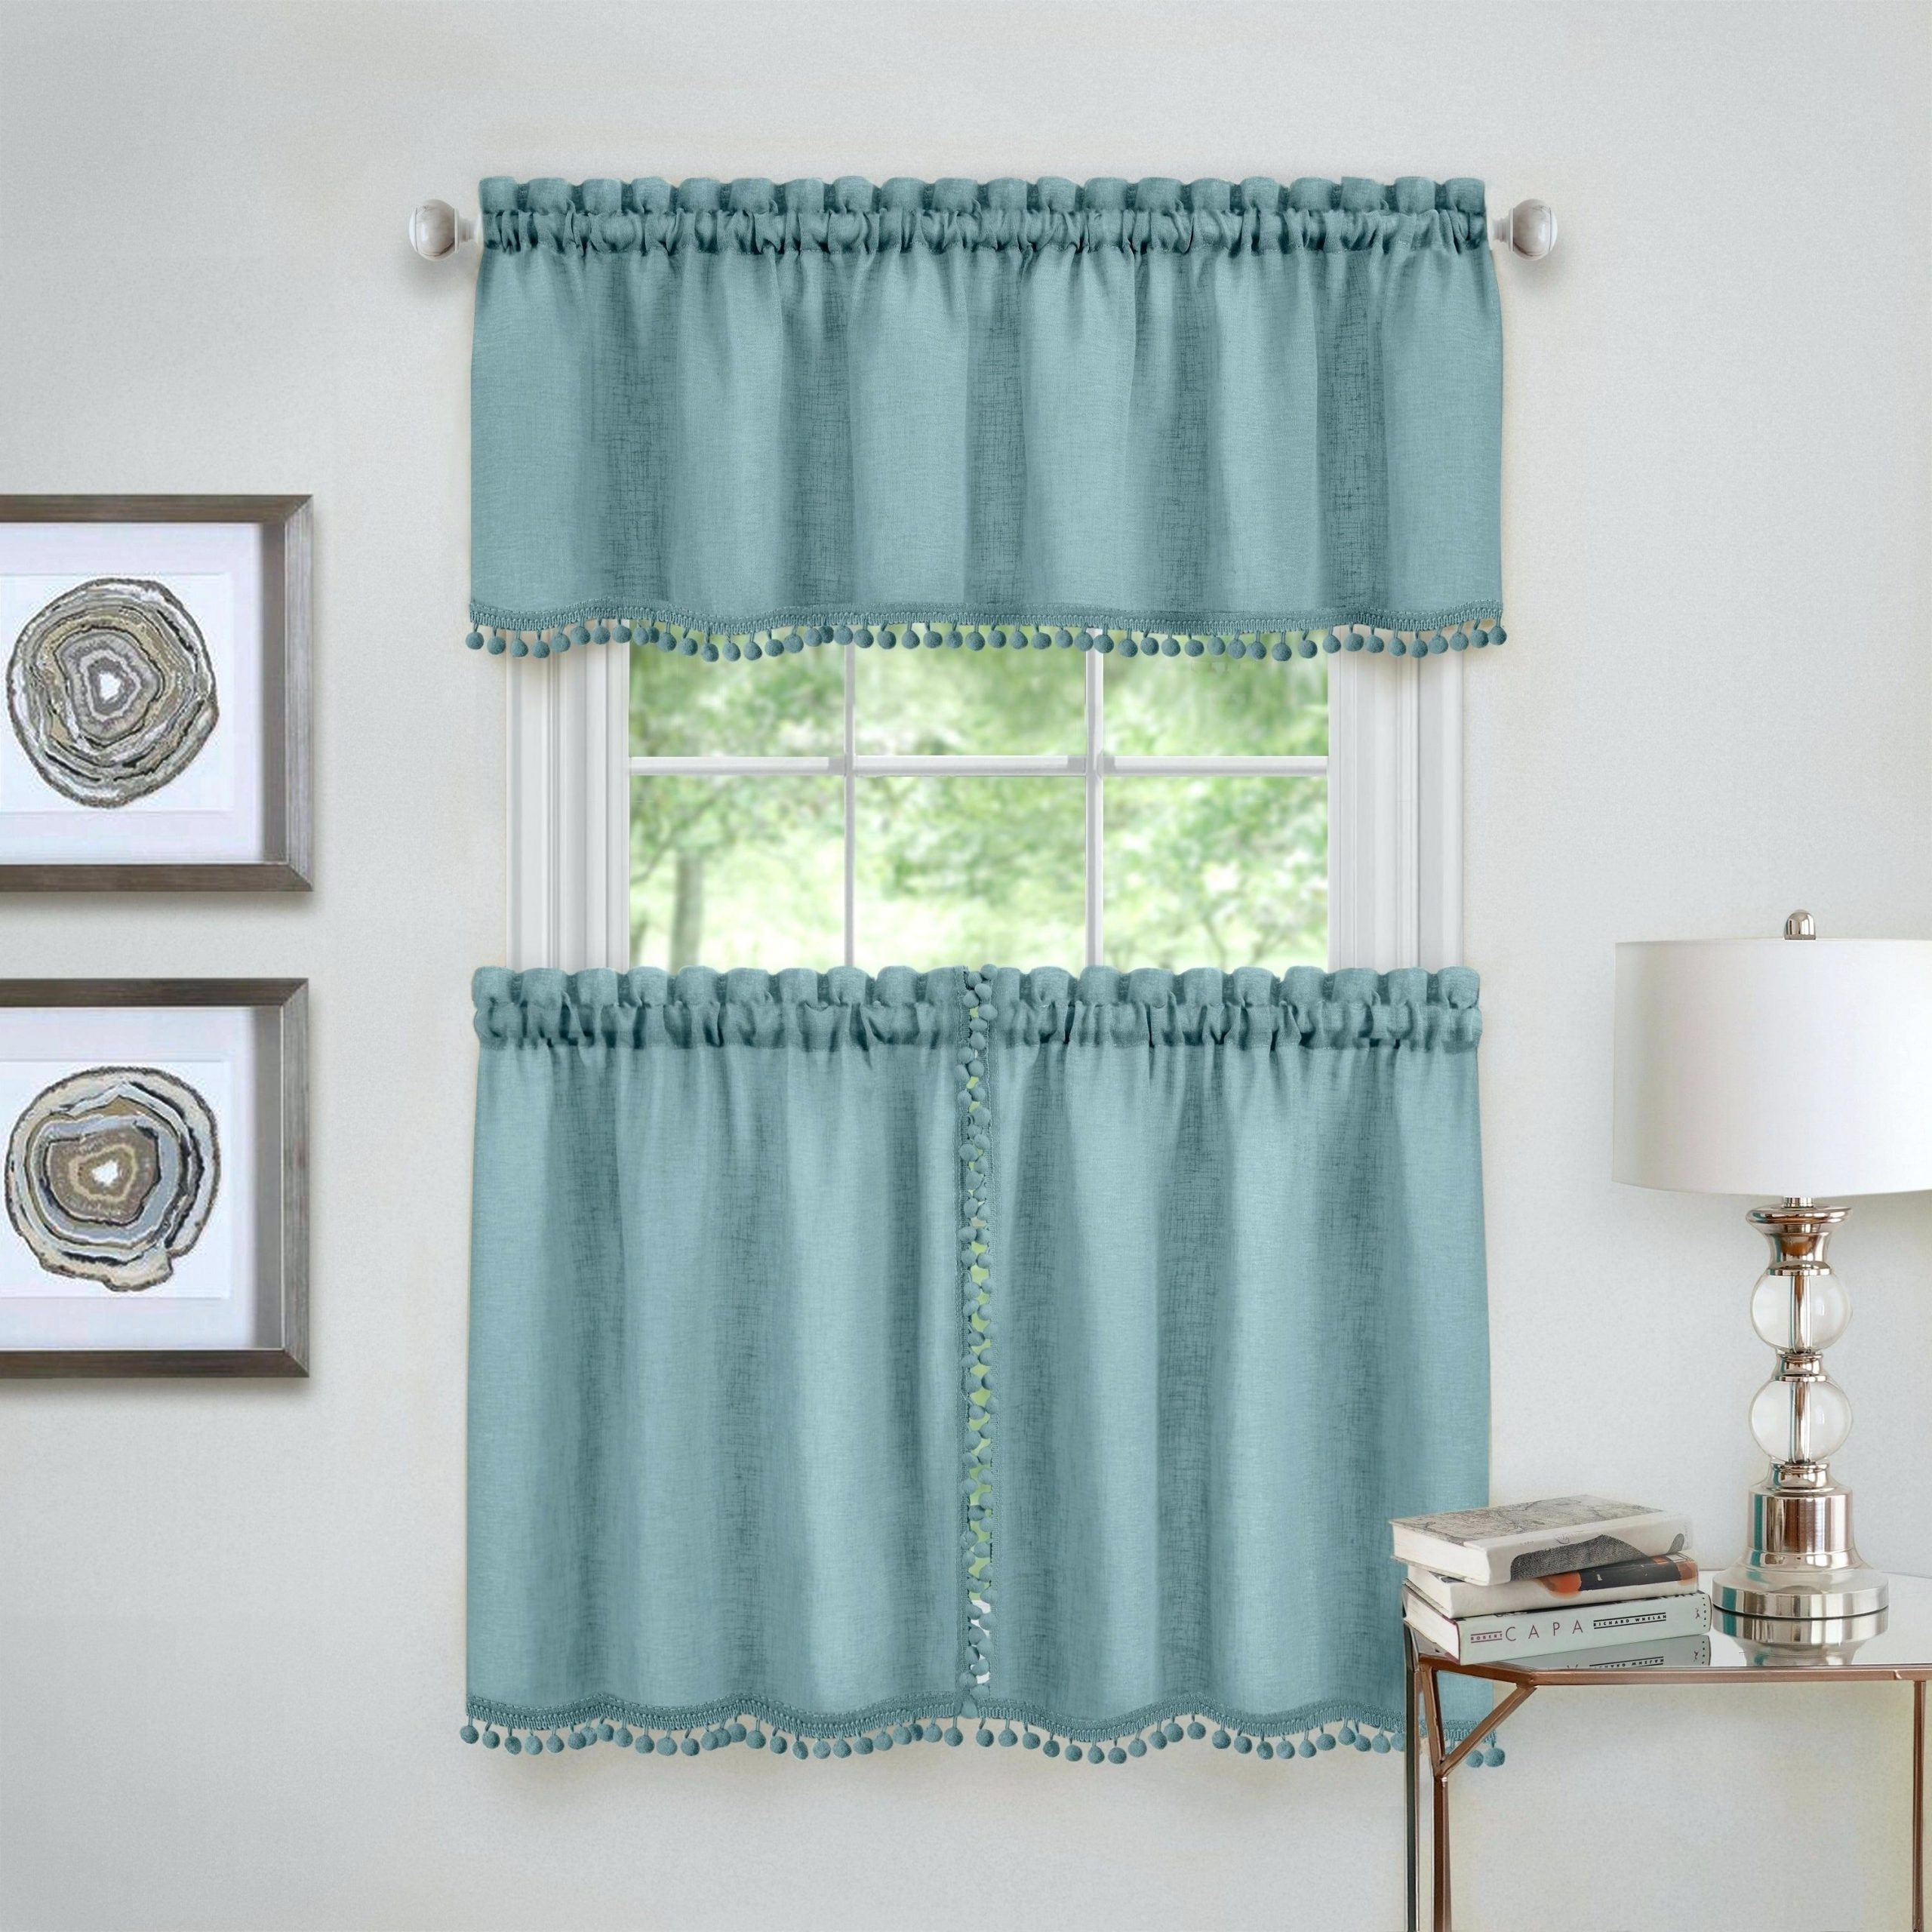 Curtain Sets With Valance – Onsaturn (View 20 of 20)